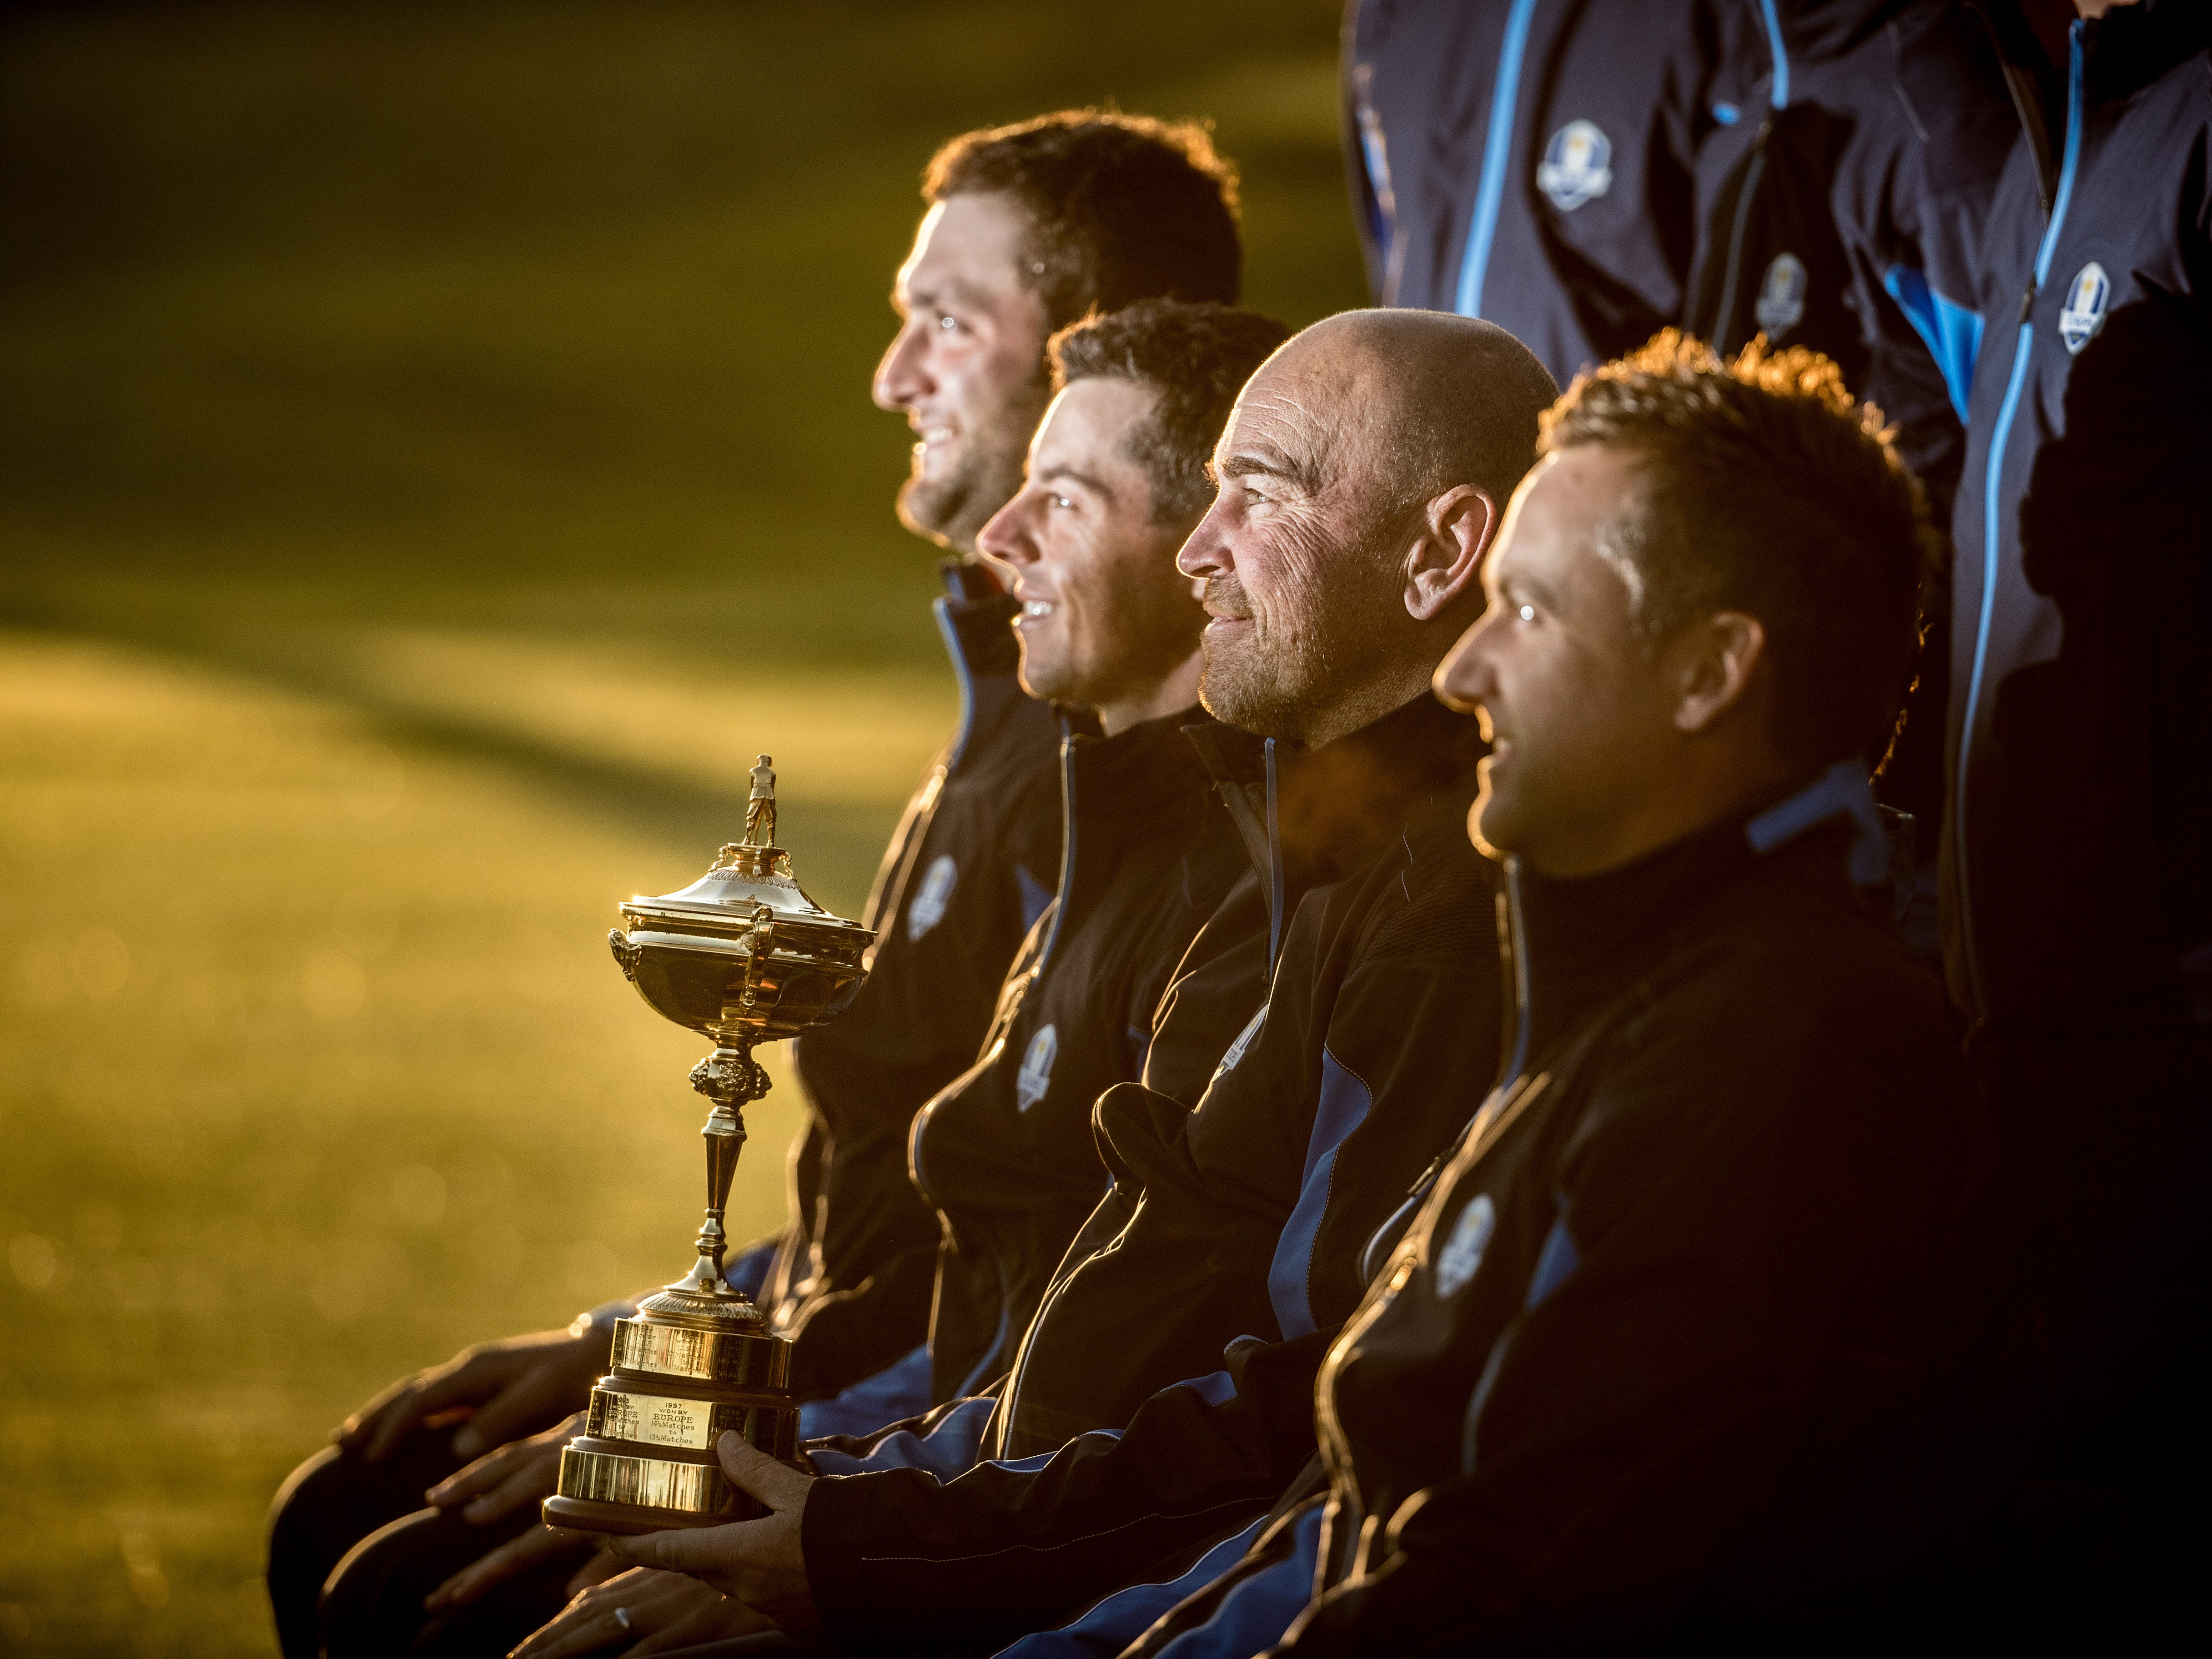 Thomas Bjorn of Europe poses alongside Rory McIlroy, Jon Rahm and Ian Poulter ahead of the 2018 Ryder Cup.